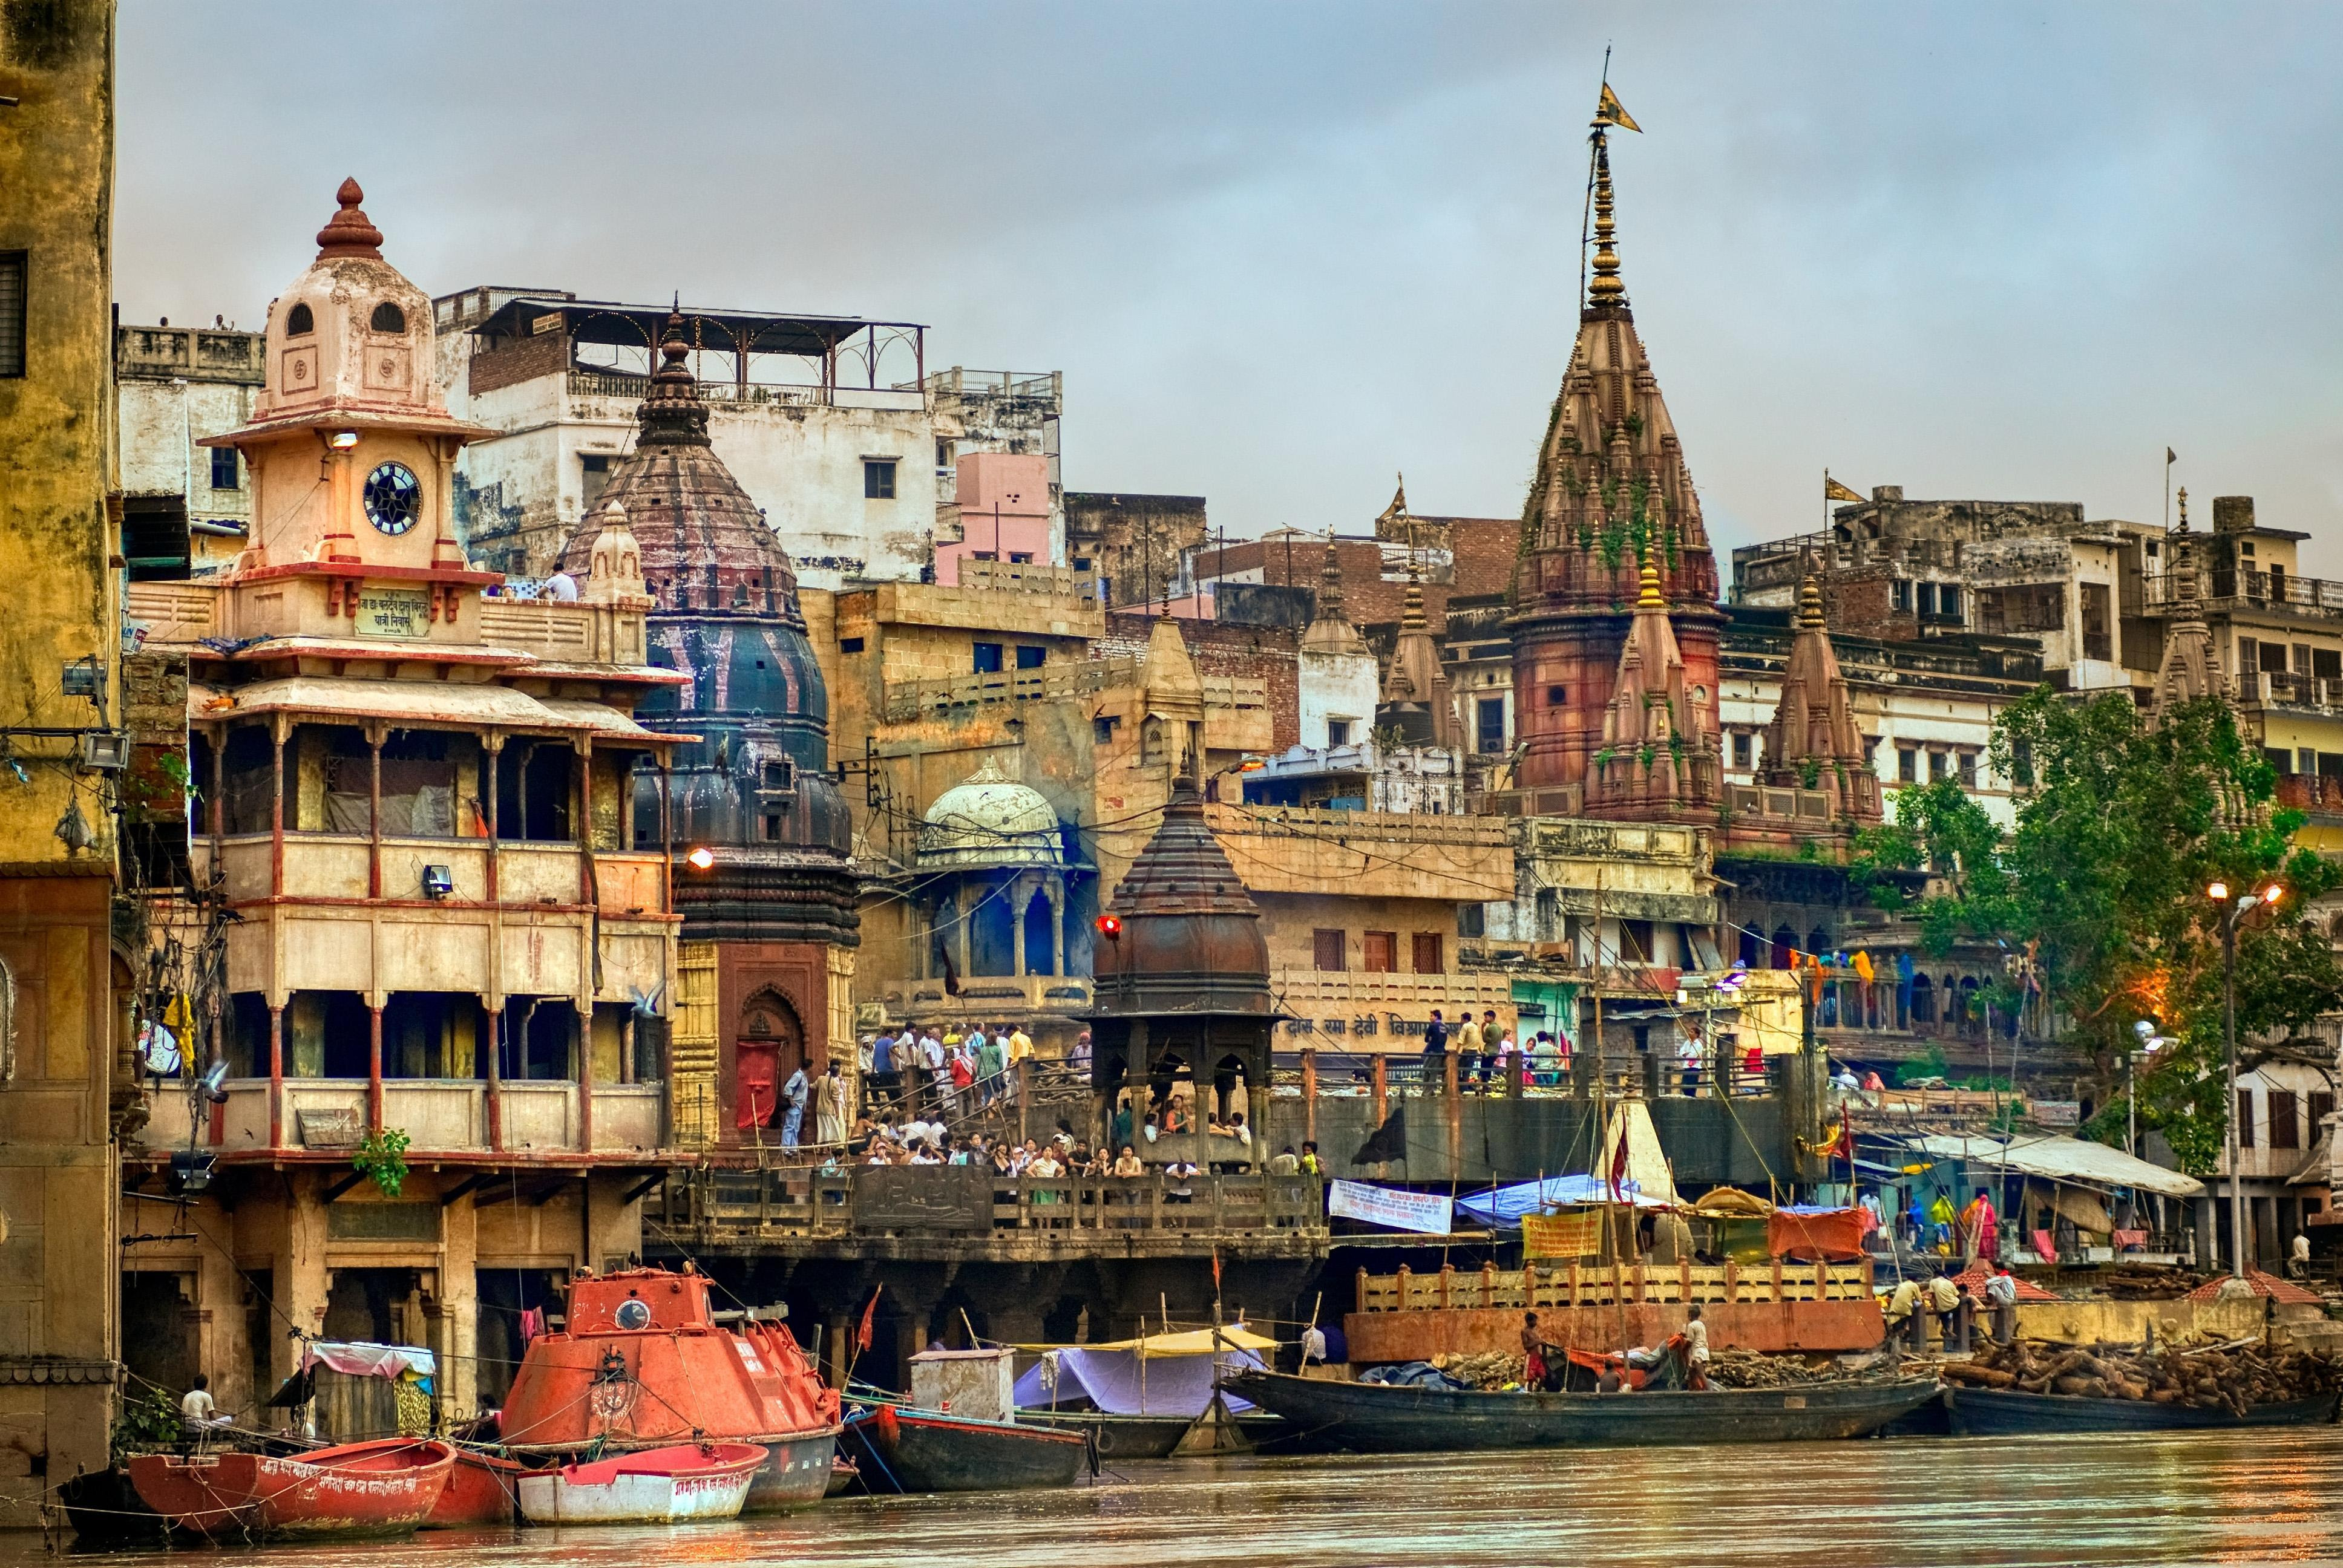 How to Spend 1 Day in Varanasi